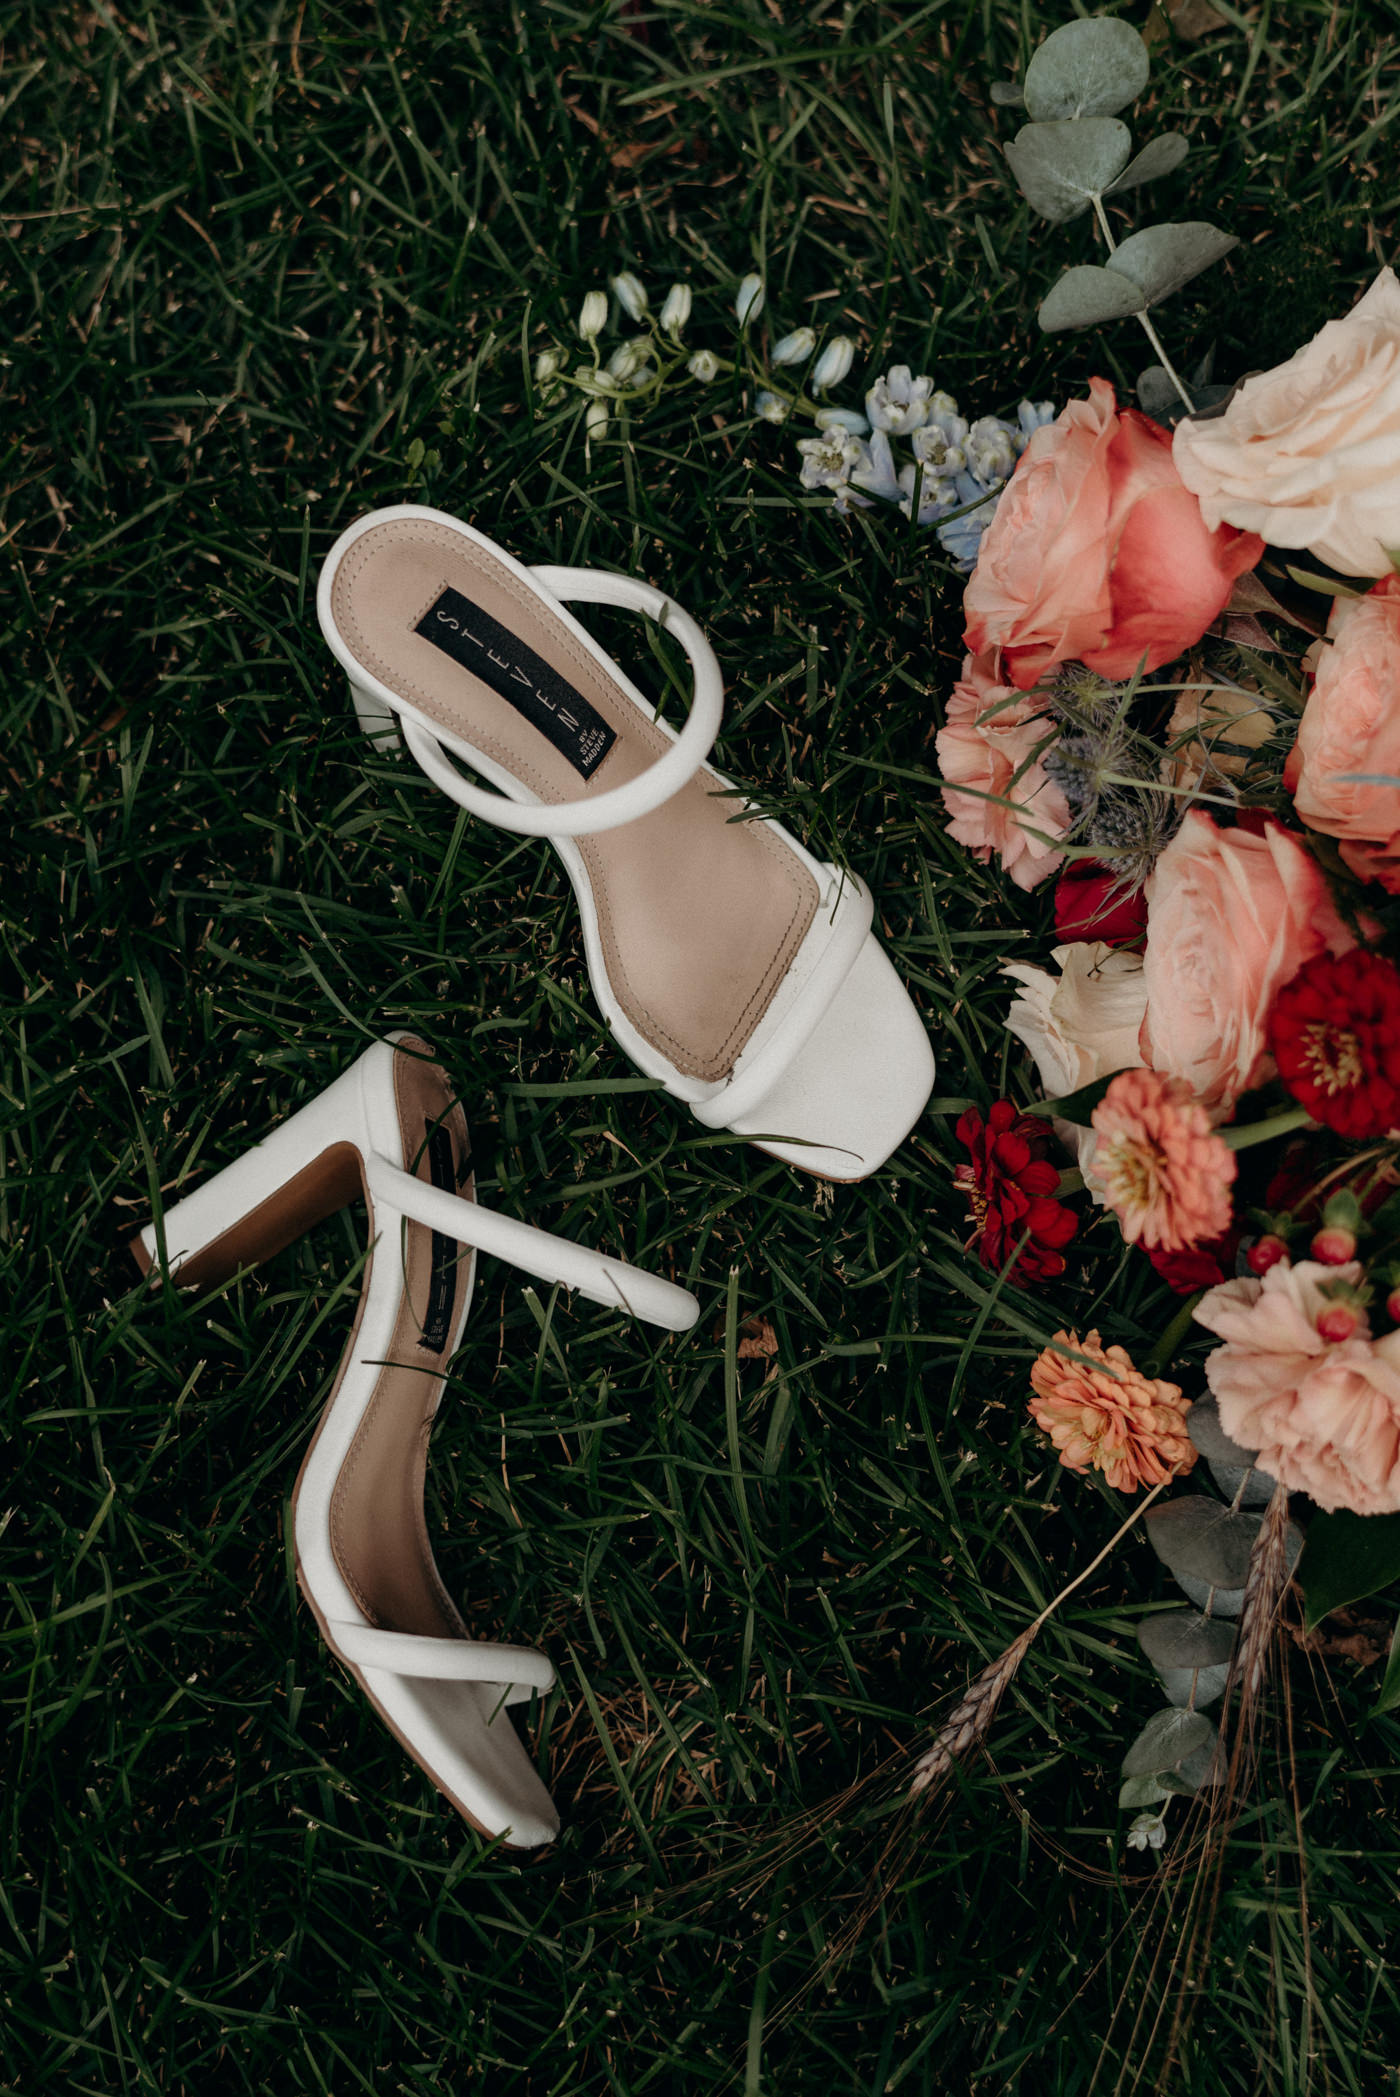 Shoes and bouquet in the grass